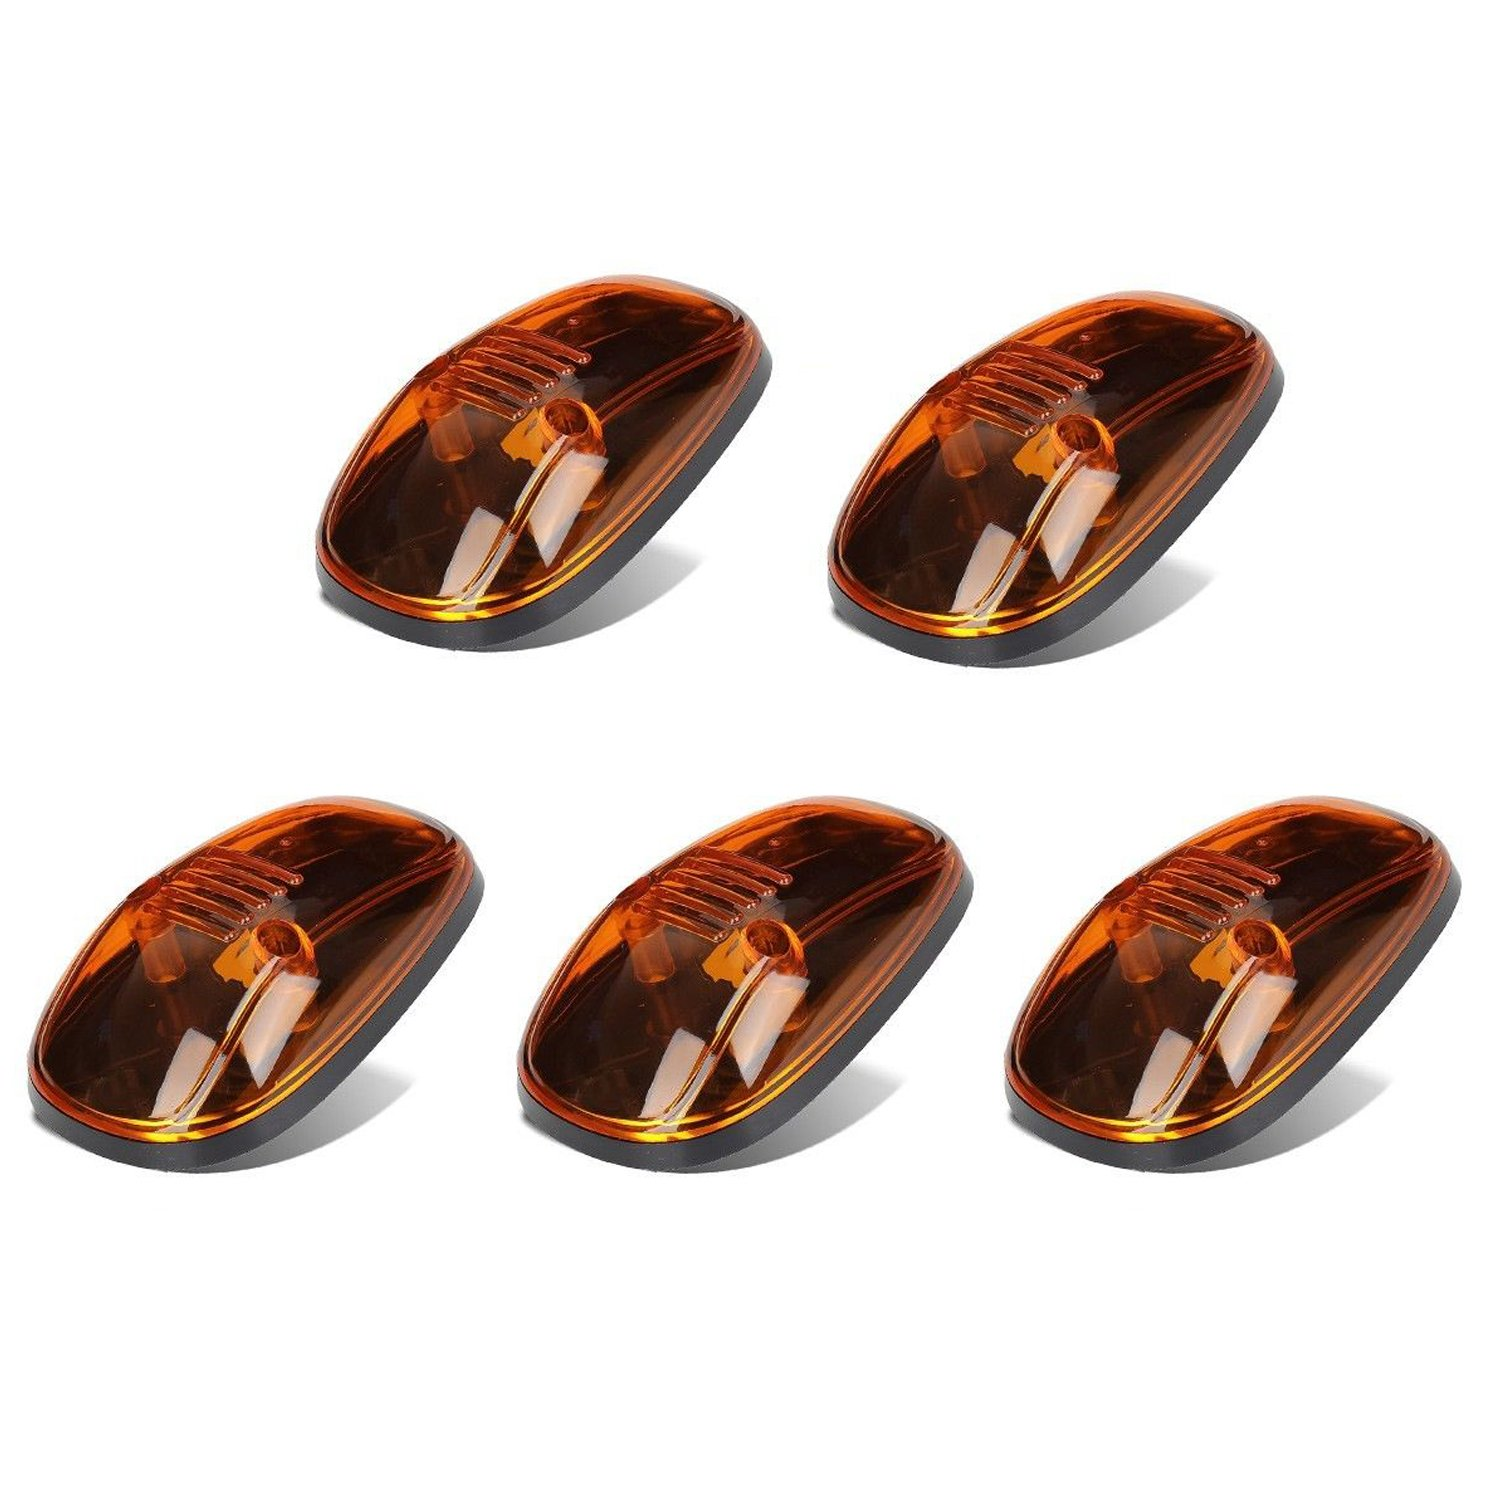 Smoke Cab + T10 Wiring Pack 5pcs Smoked Cab Top Marker Roof Light Covers with Base Housing for Dodge RAM 1500 2500 3500 4500 5500